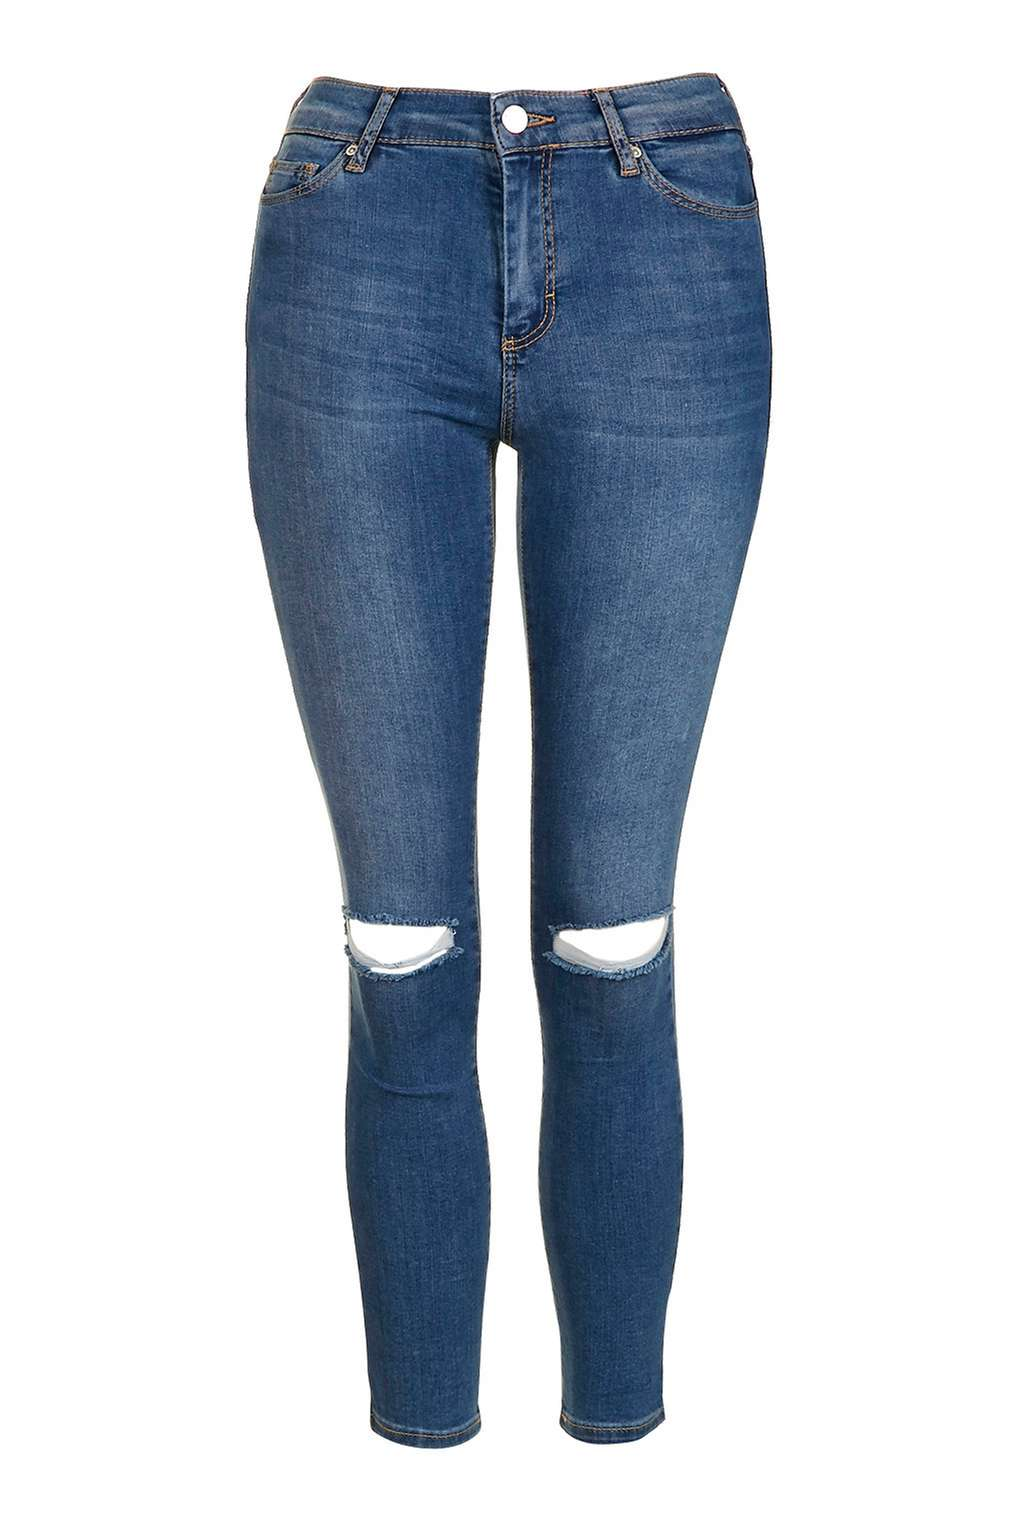 Topshop Leigh jeans, $70